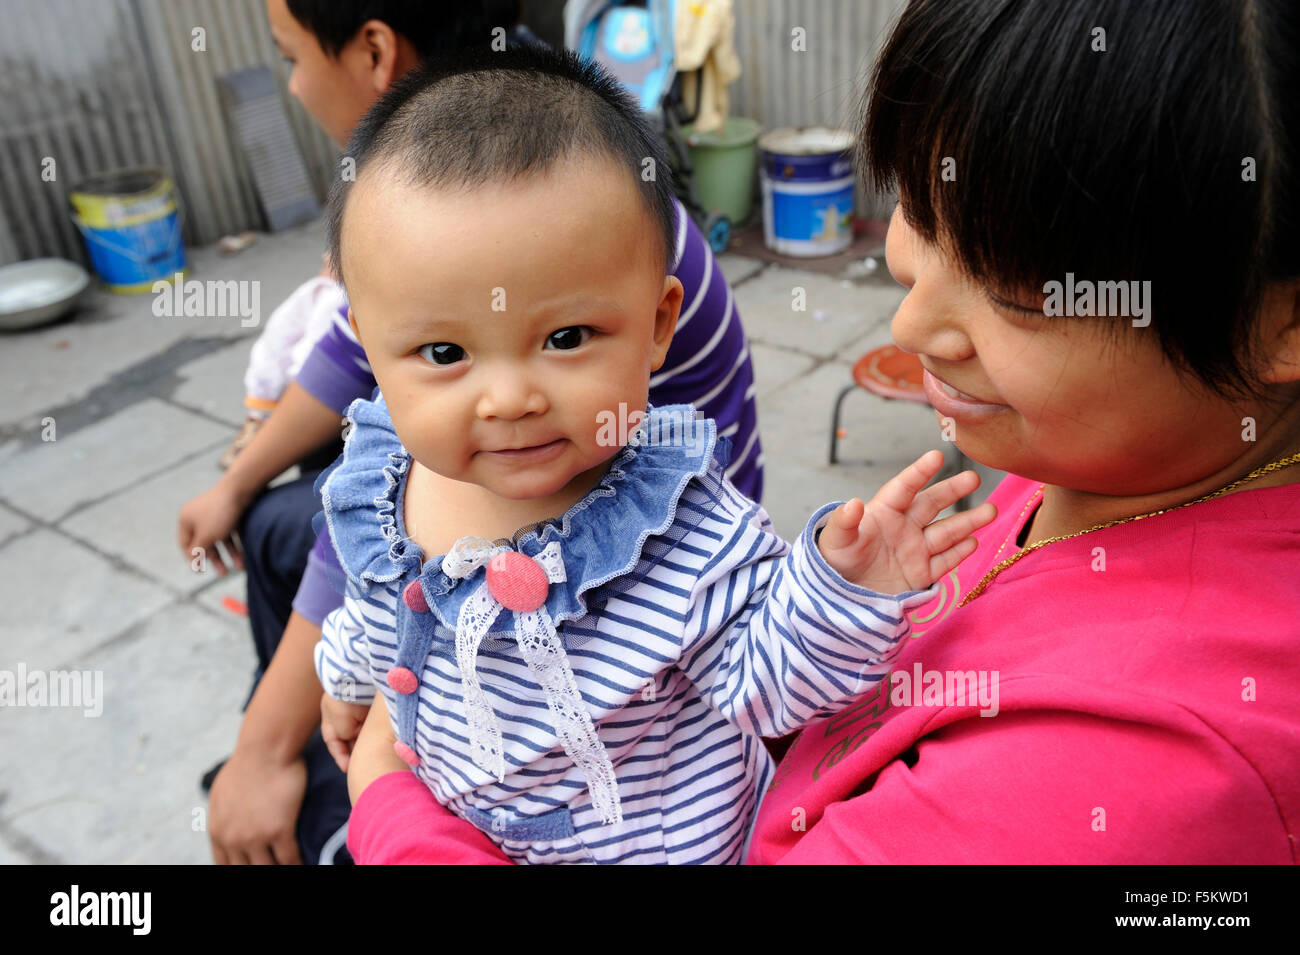 A Chinese woman holds a baby in Beijing, China. - Stock Image